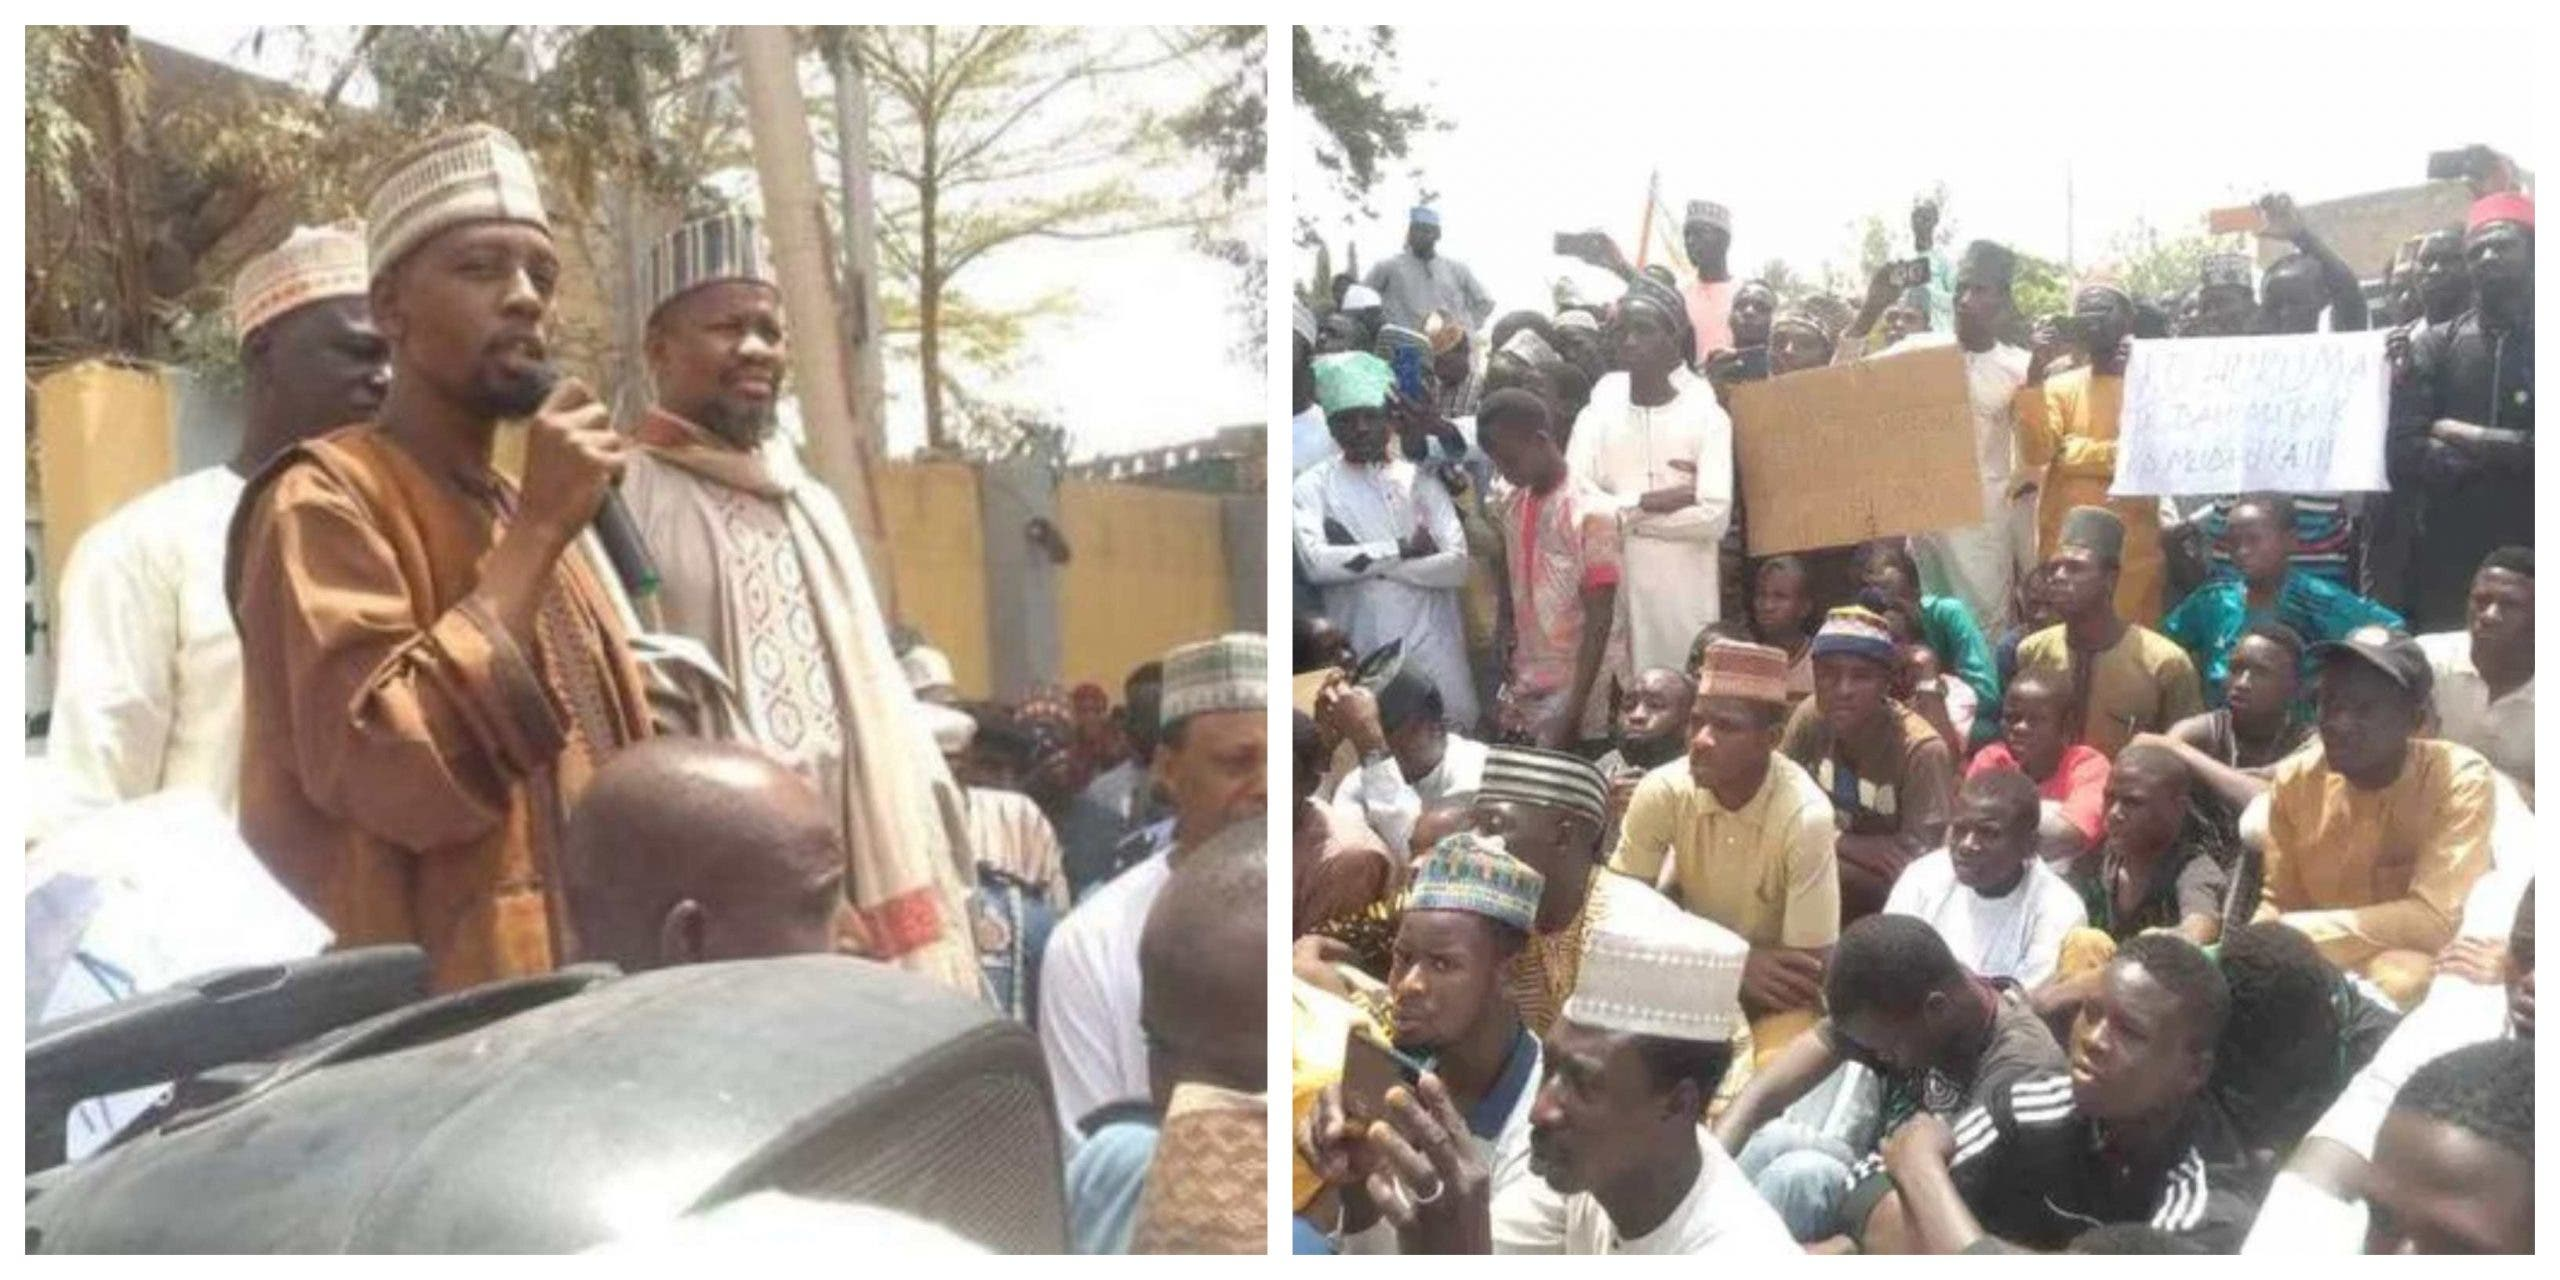 Kano Sharia Court Sentences Singer To Death Over Blasphemous Song Against Prophet Muhammad 1